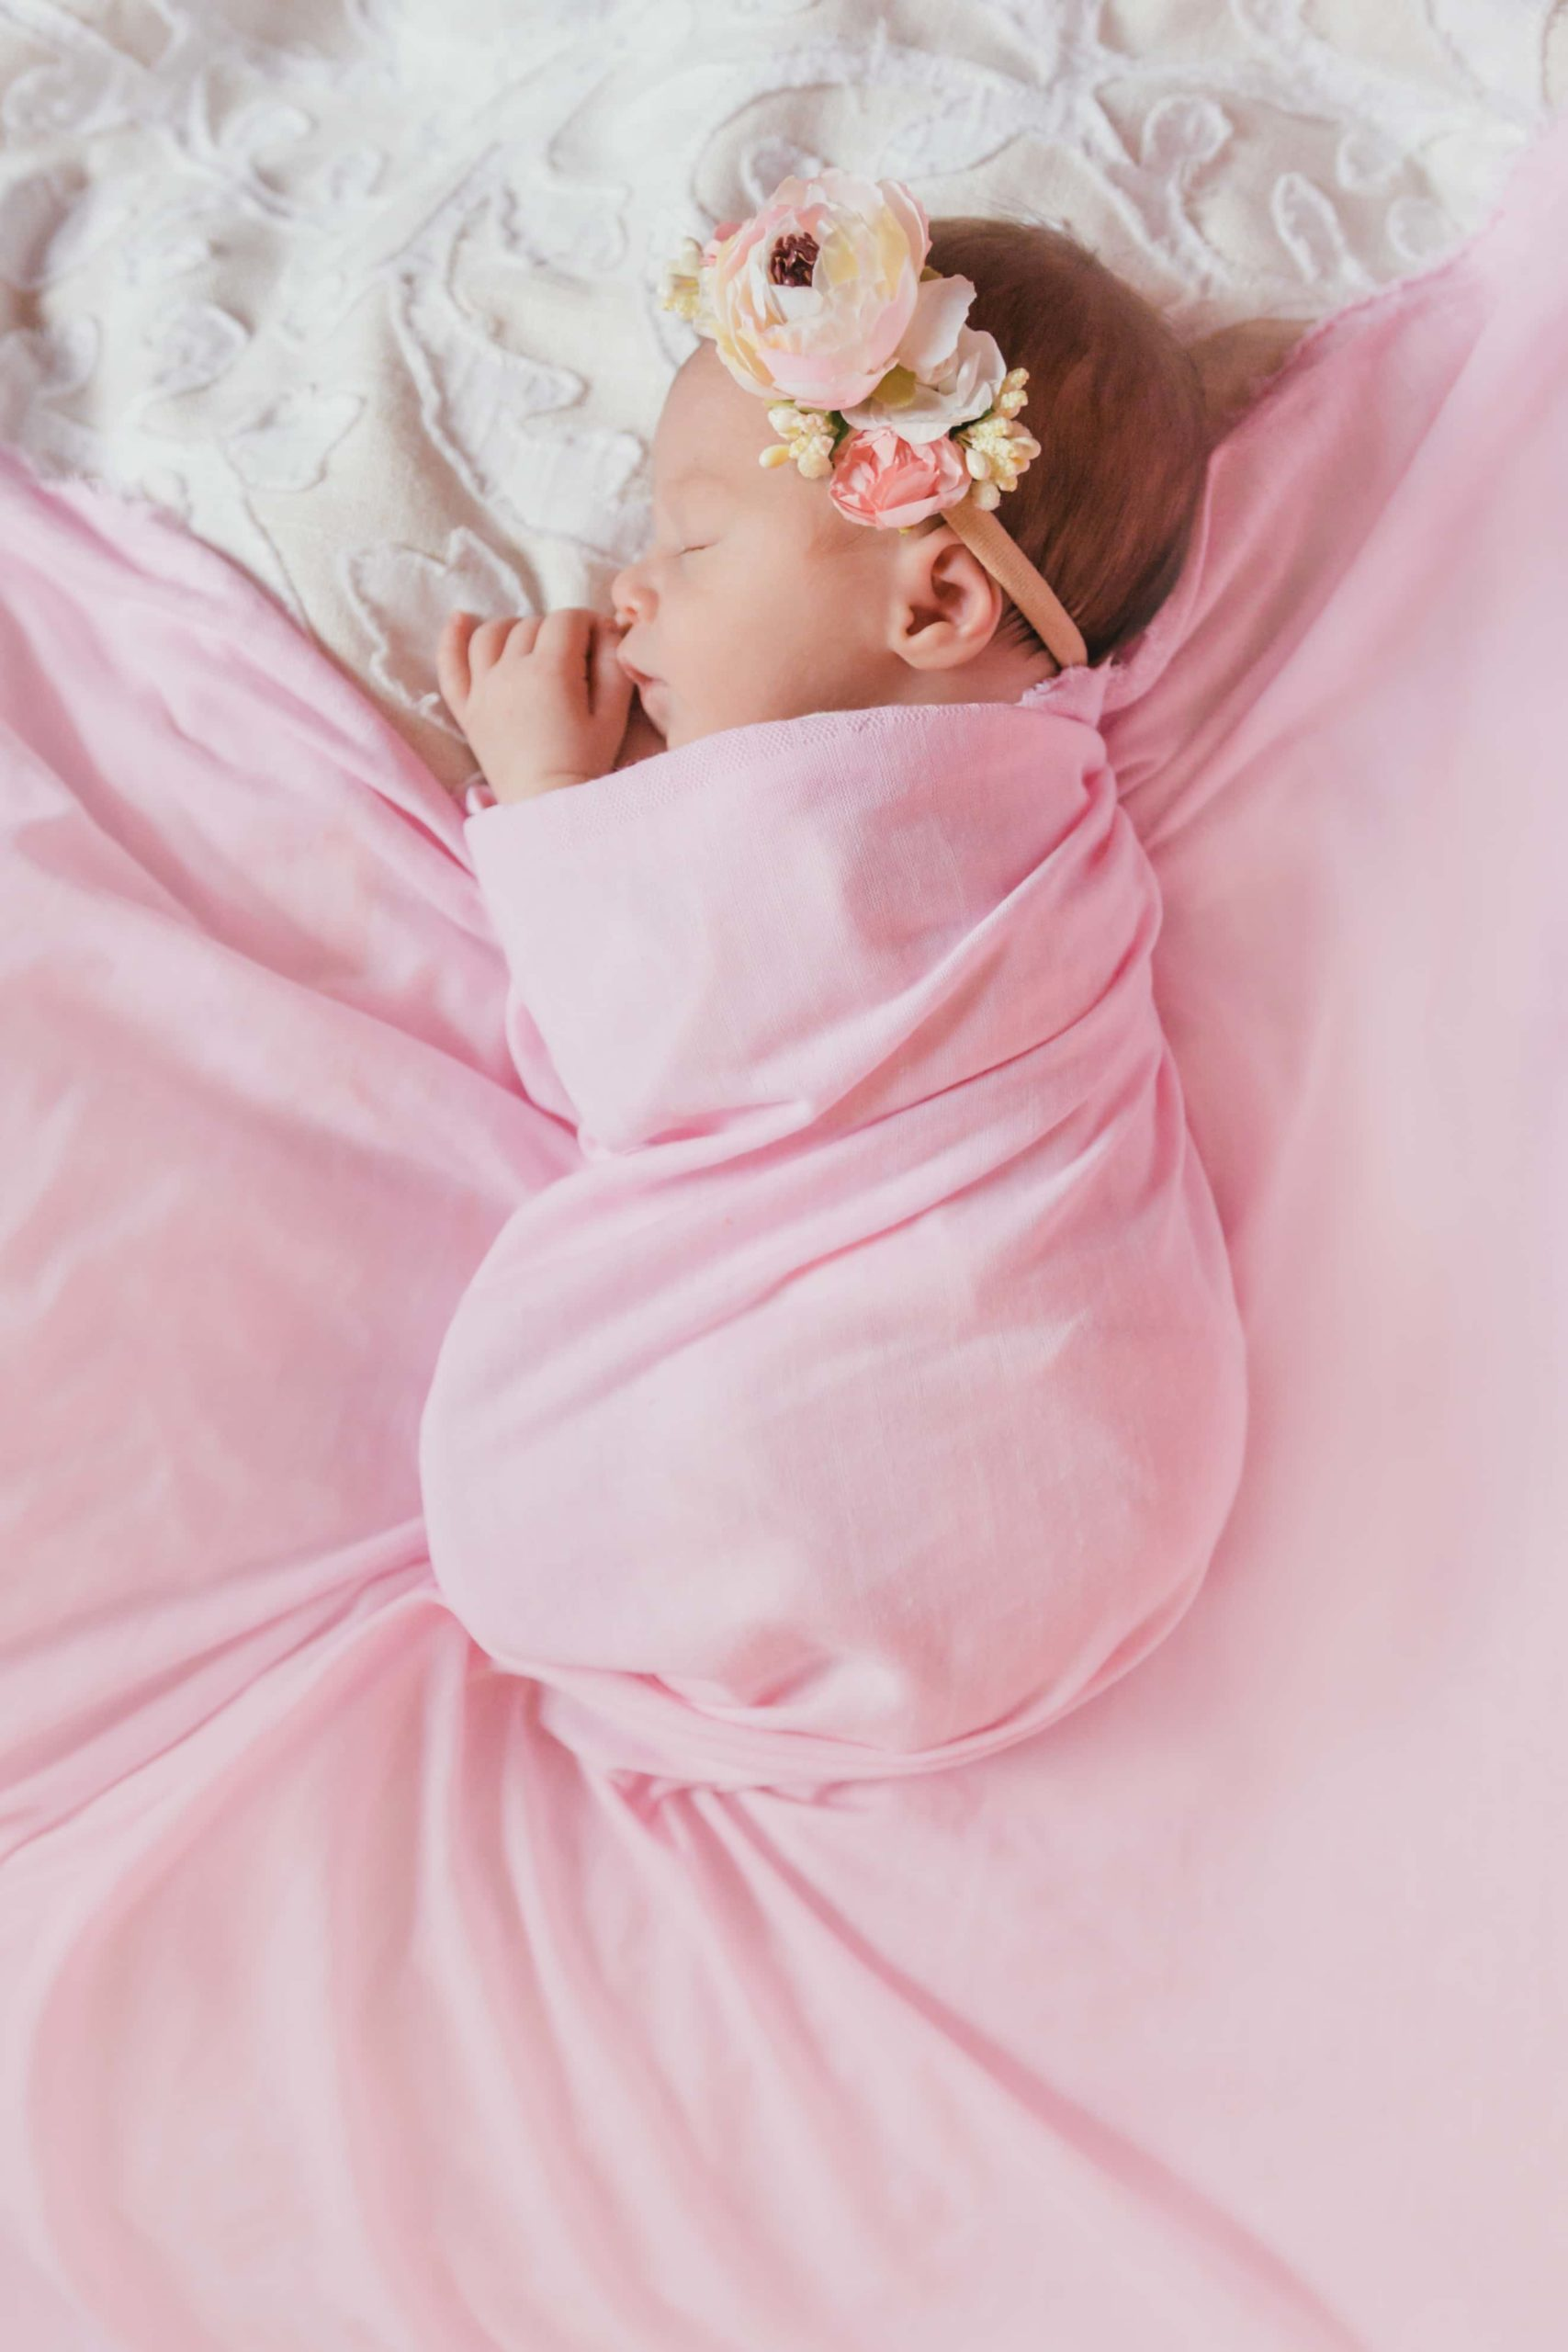 Atlanta Newborn Photographer Baby Girl in Soft Pink with FLowers